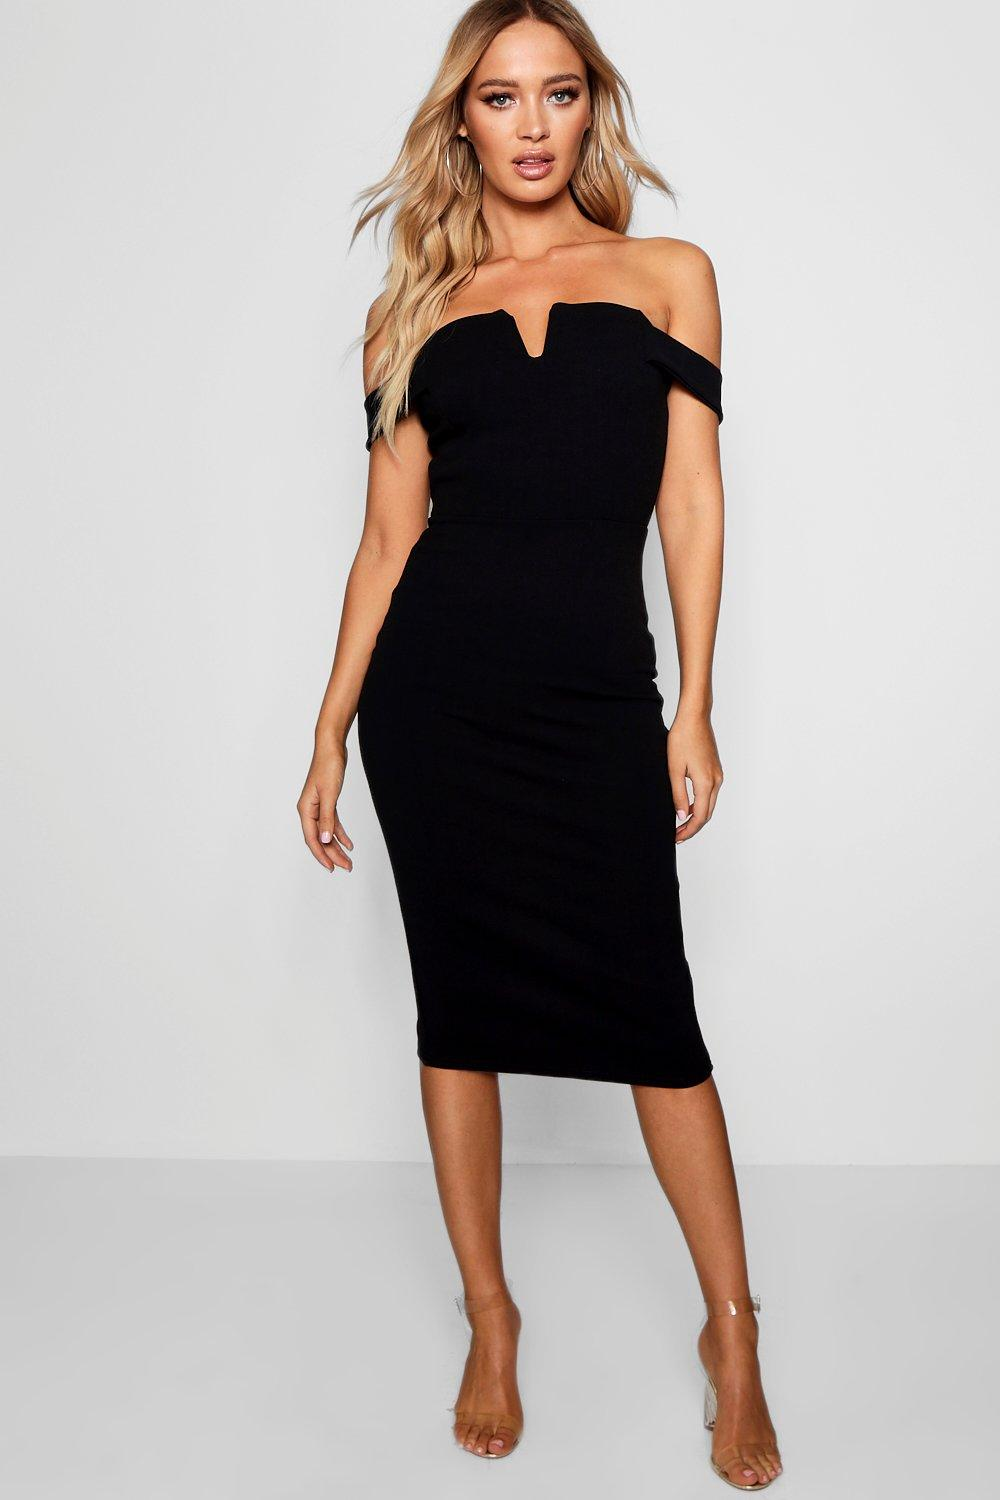 Off Shoulder Midi Bodycon Dresses